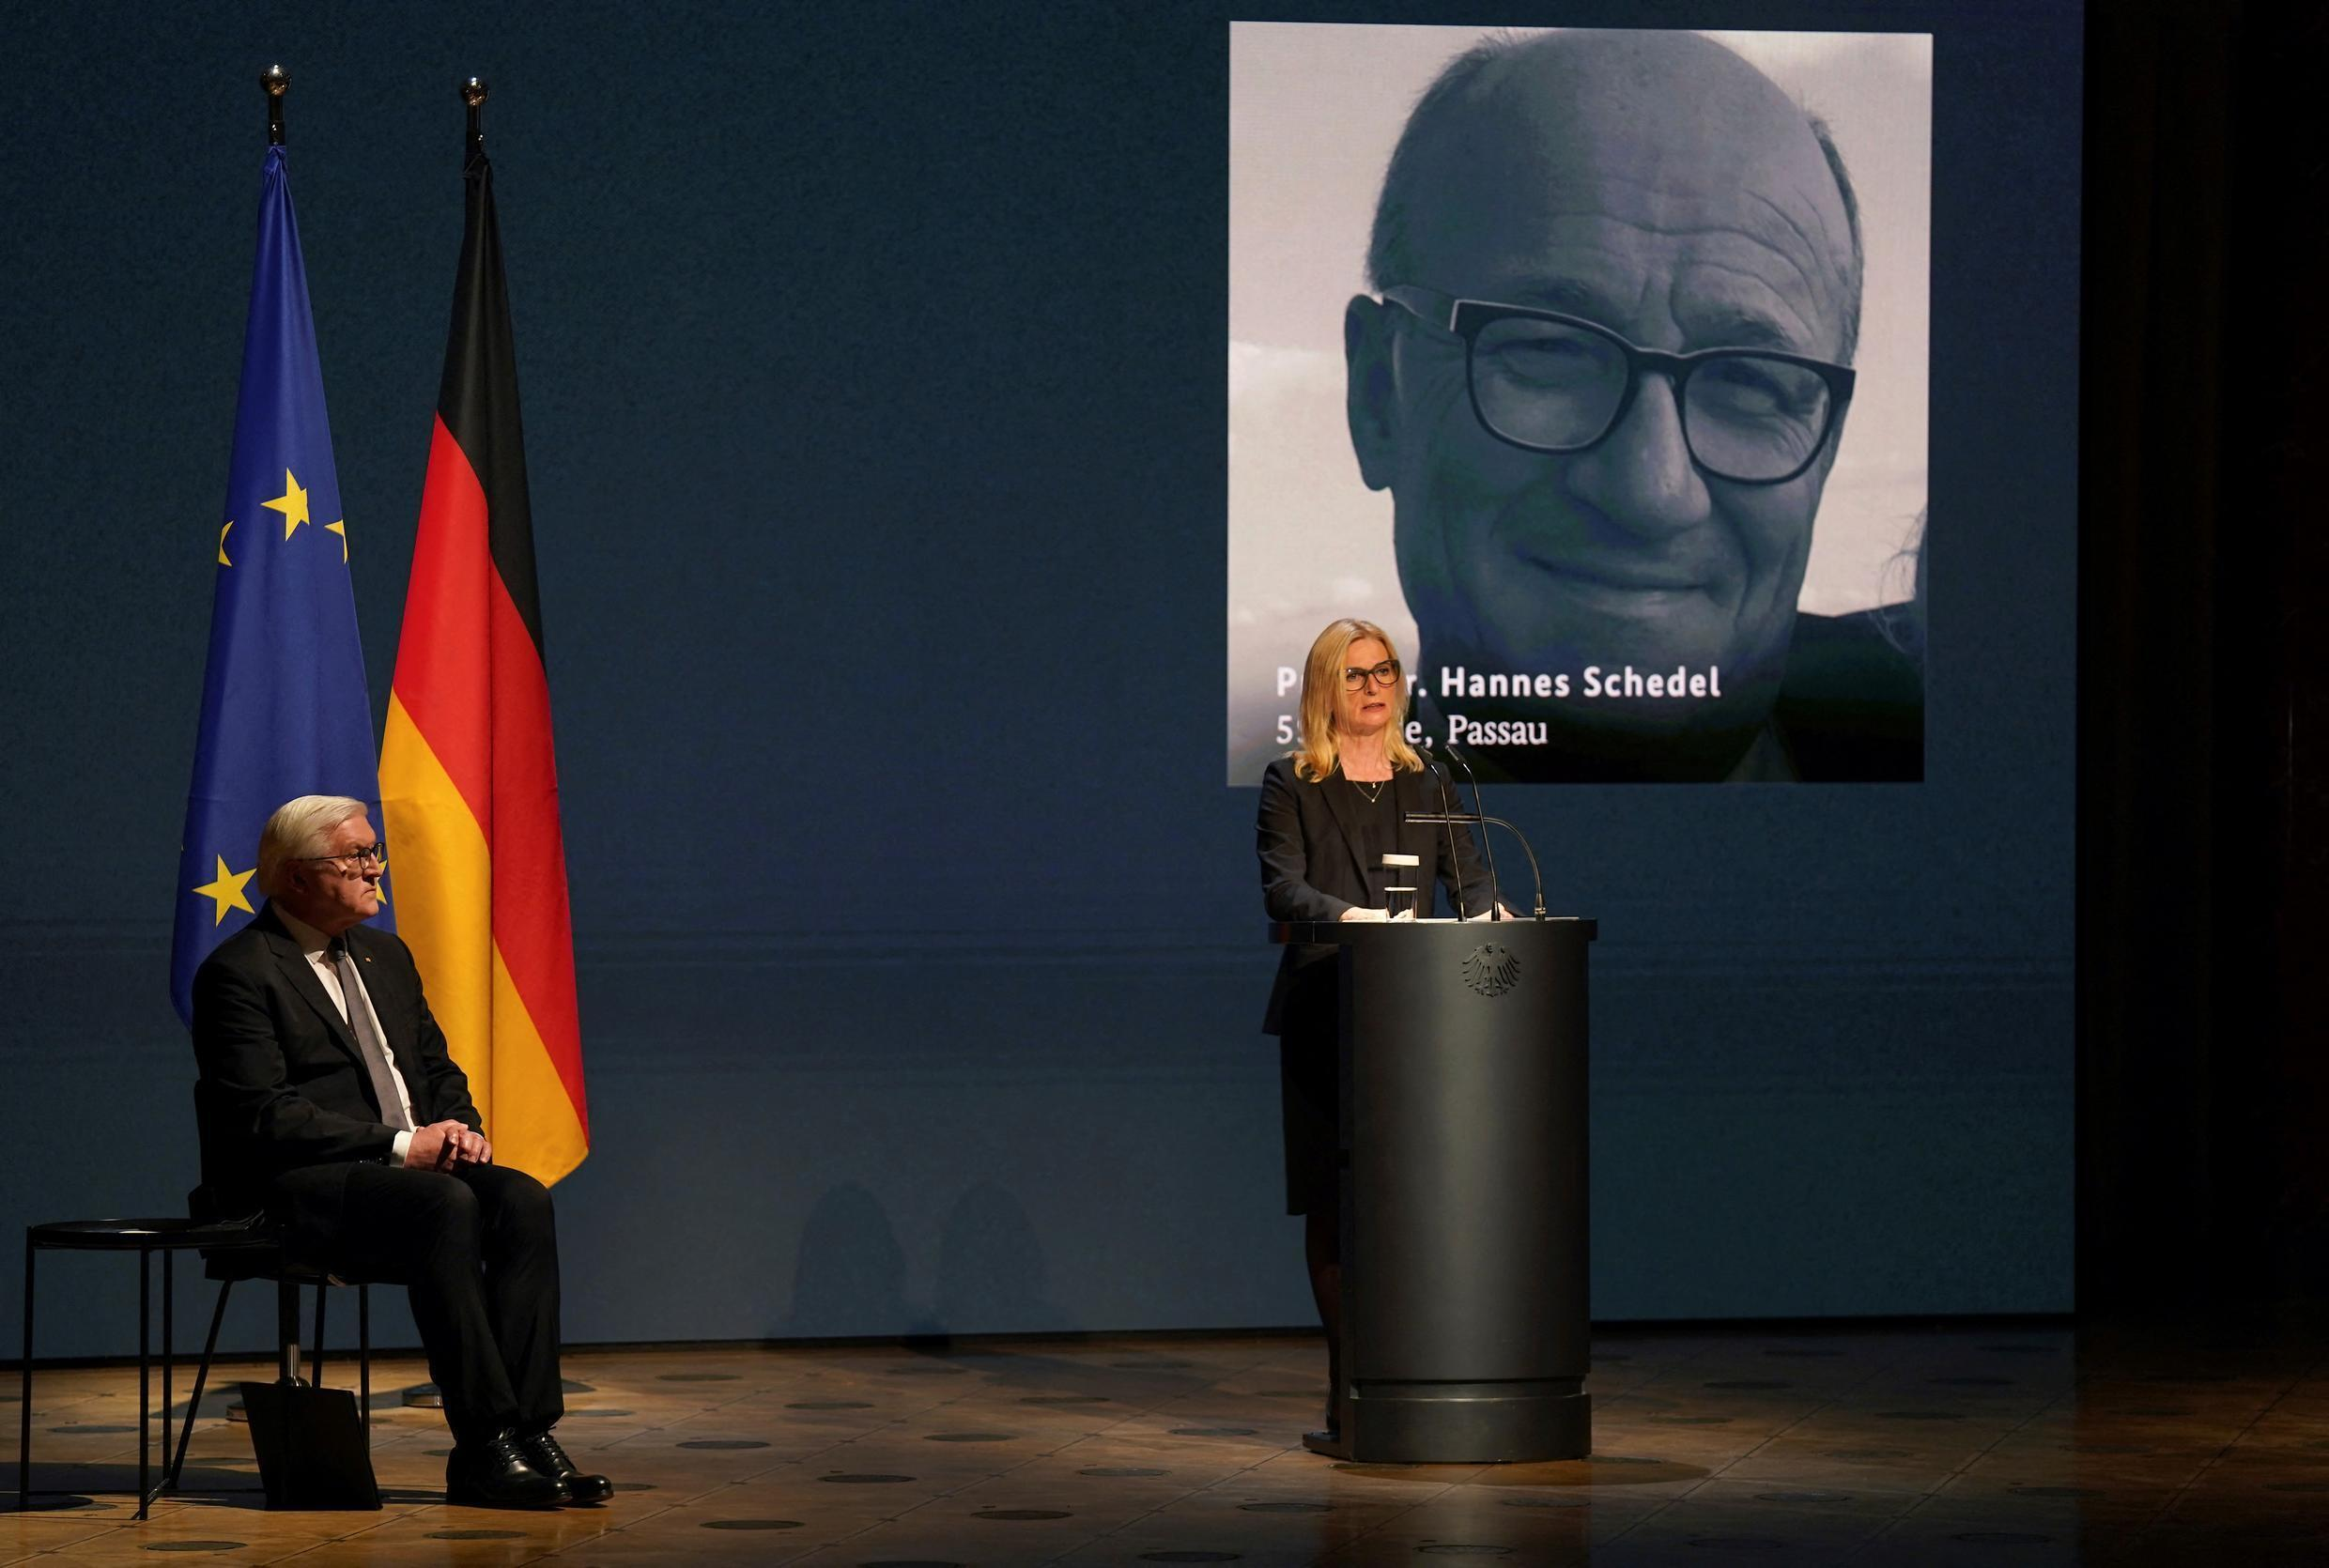 German President Frank-Walter Steinmeier listens as Anita Schedel, widow of the doctor Hannes Schedel of Passau, who died of the coronavirus, delivers a speech during a ceremony for the German victims of the pandemic at the Konzerthaus concert hall in Berlin on 18 April 2021.